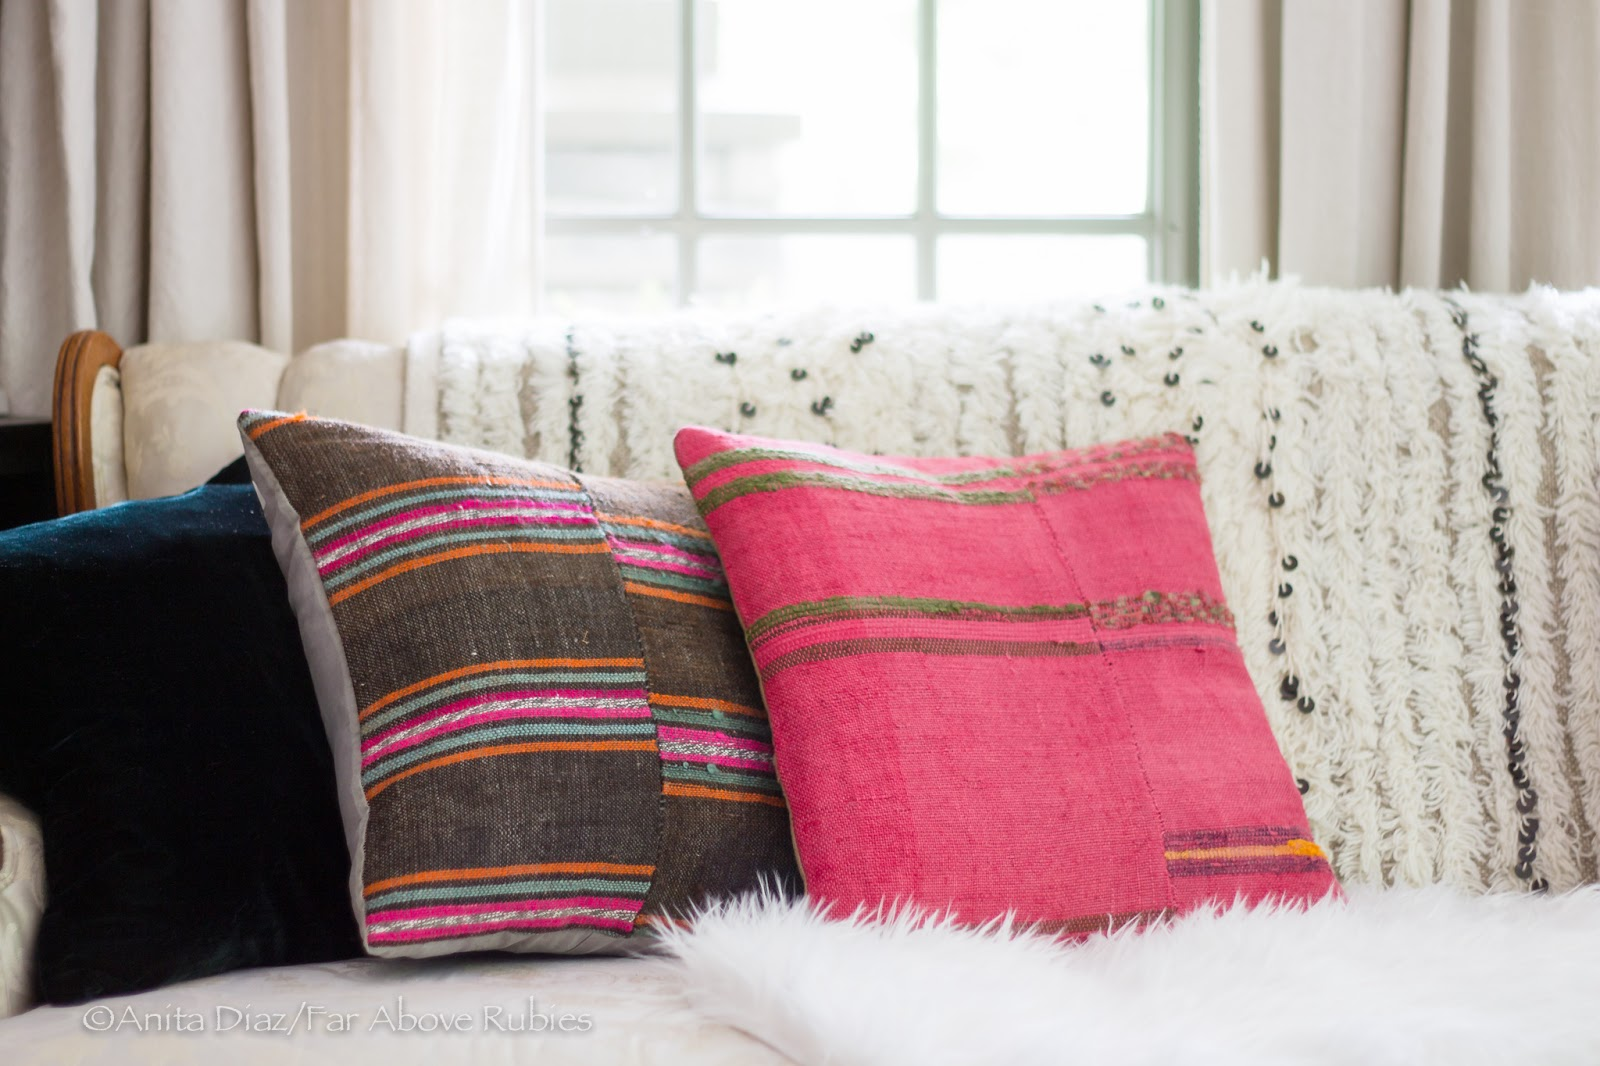 pillows pillow detail kilim